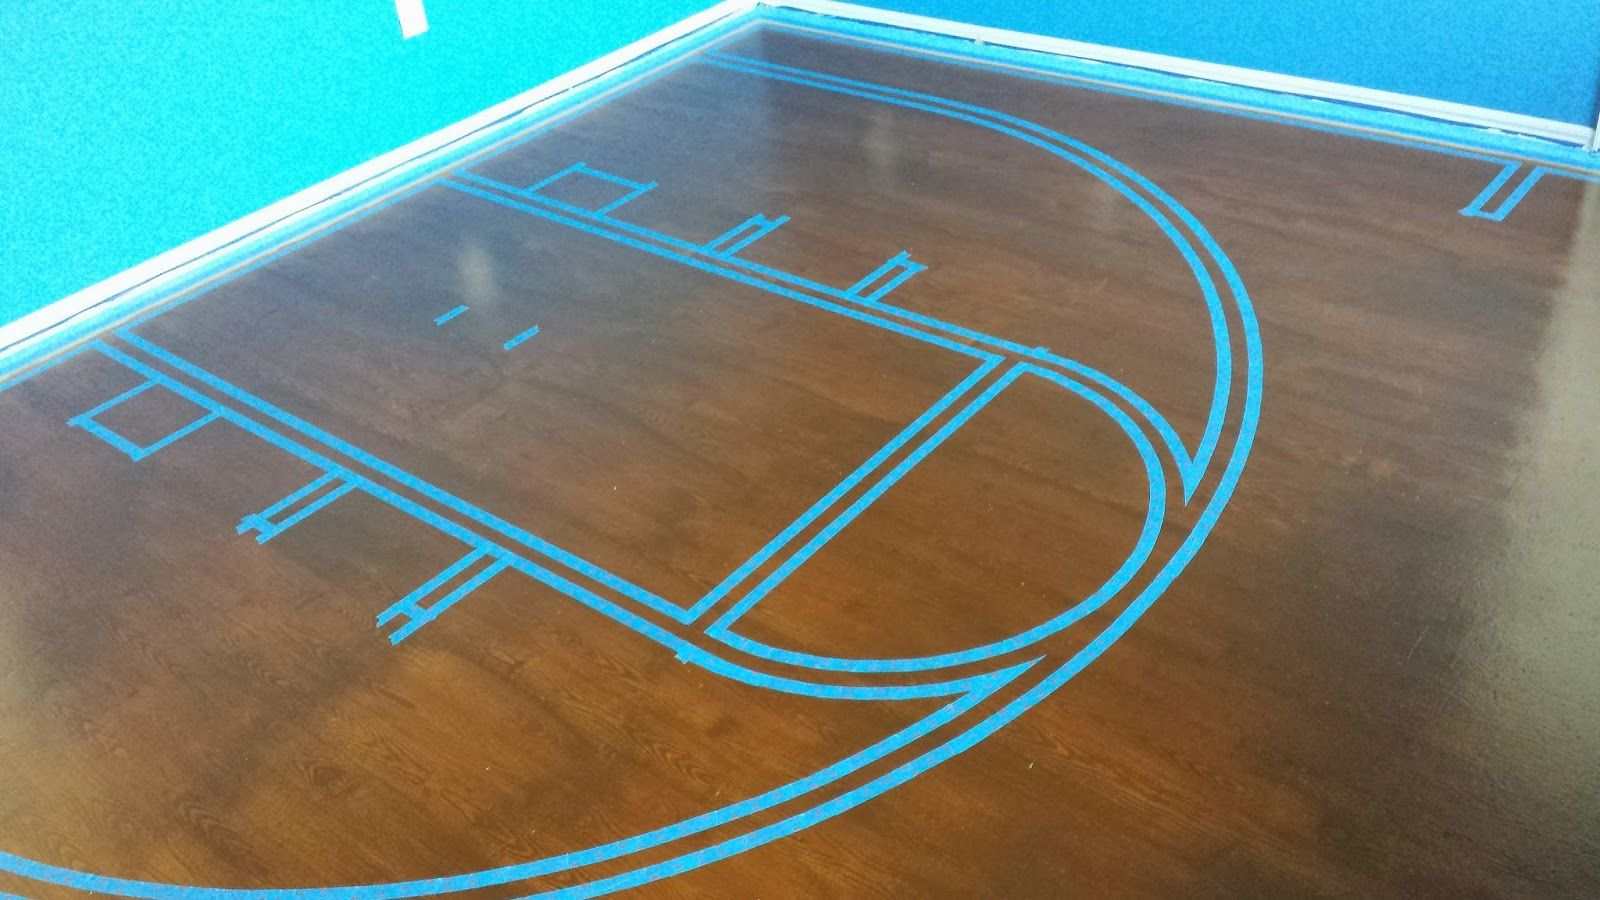 Painted Plywood Subfloor Beginning To End Painted Plywood Floors Basketball Court Setting The Basketball Bedroom Painted Plywood Floors Plywood Flooring